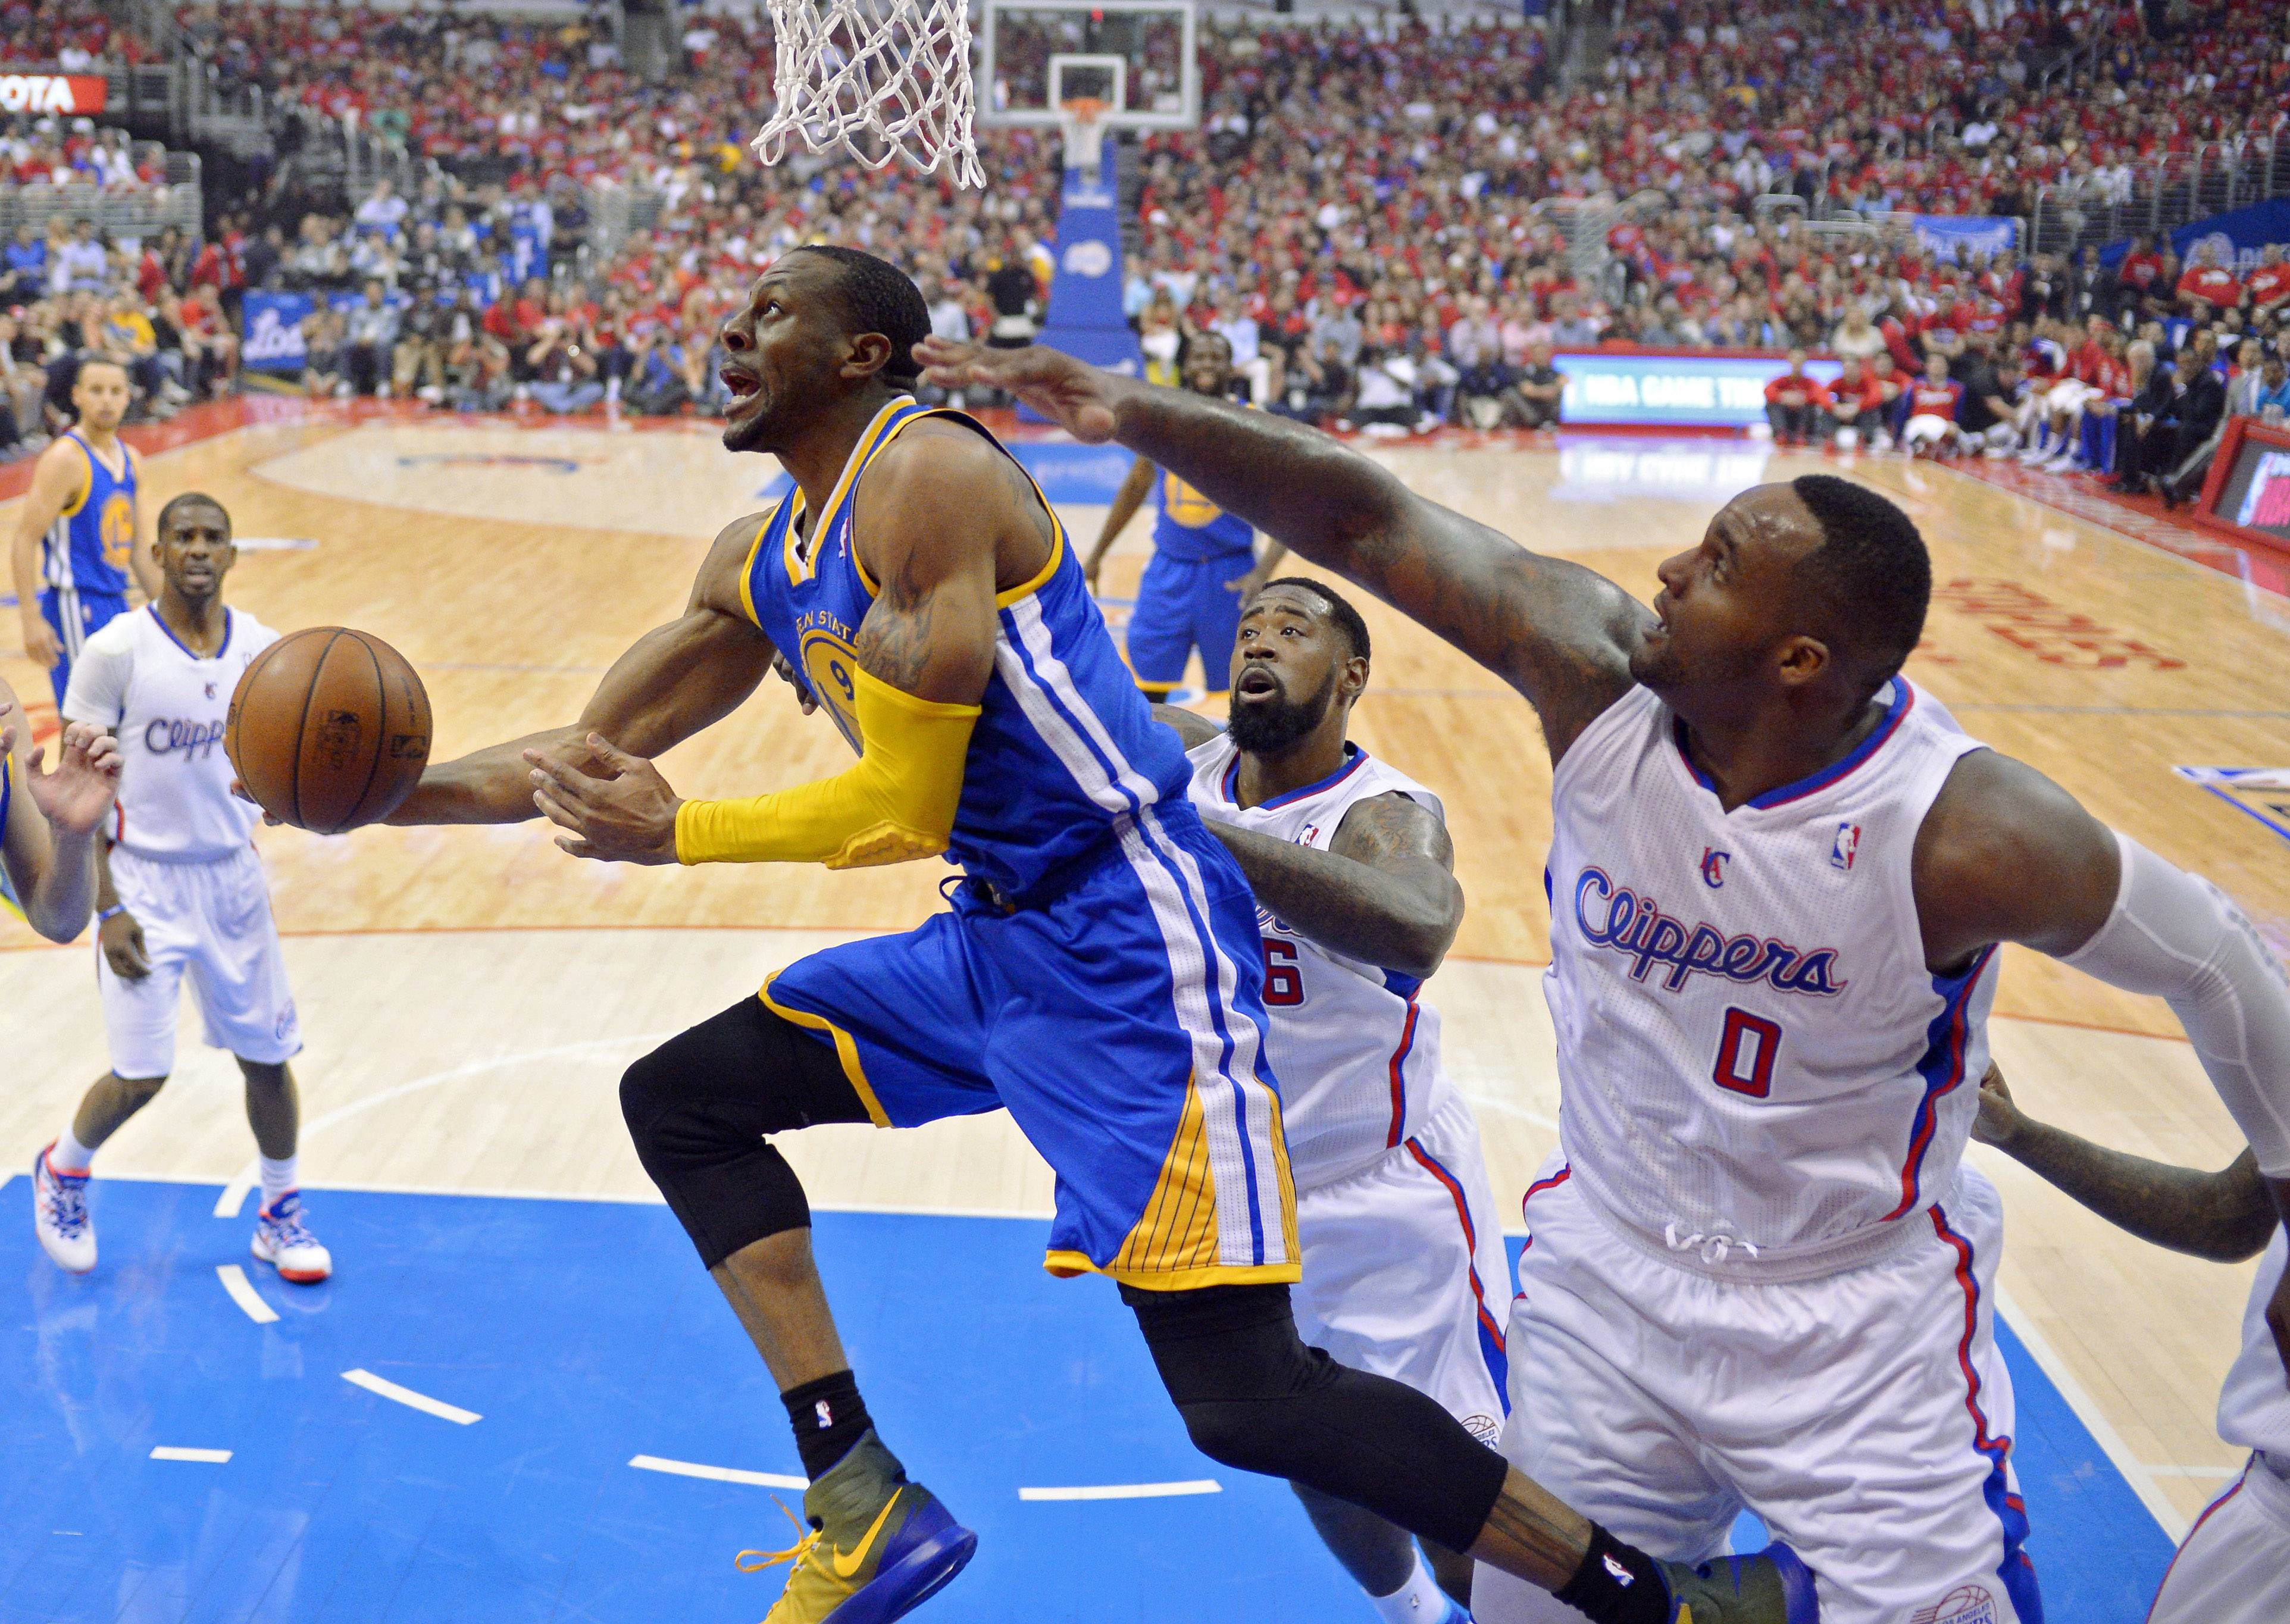 Golden State Warriors forward Andre Iguodala, left, puts up a shot as Los Angeles Clippers center DeAndre Jordan, center, and forward Glen Davis defend during Game 1 of an opening-round NBA basketball playoff series Saturday in Los Angeles.